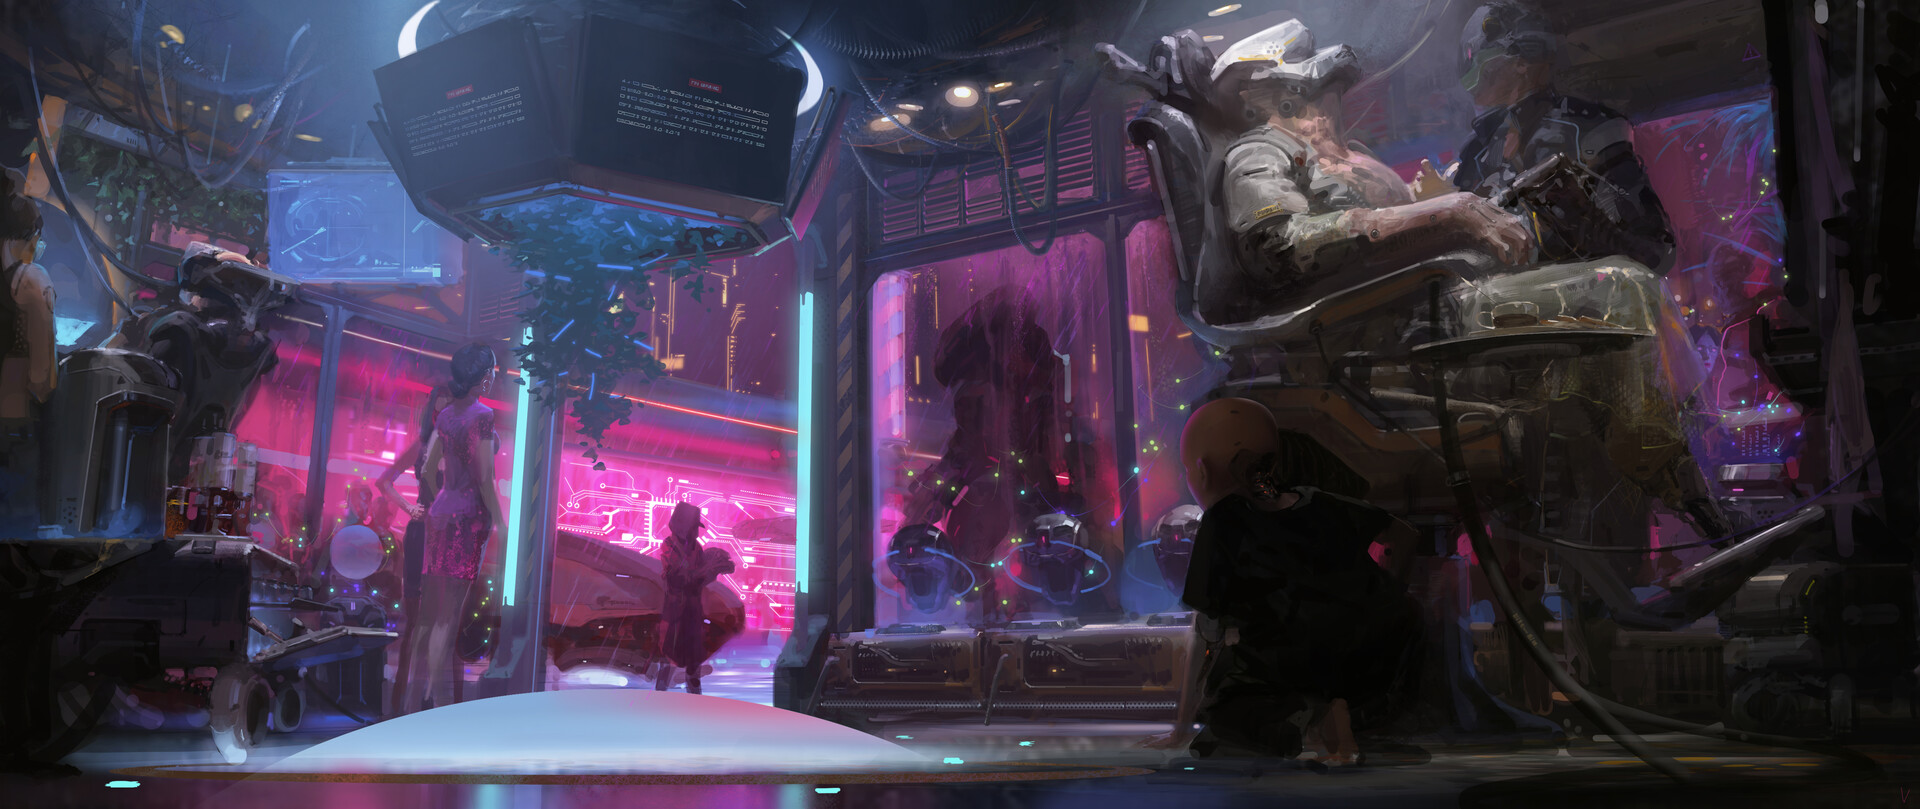 The Glorious Fantasy Art of Victor Cloux